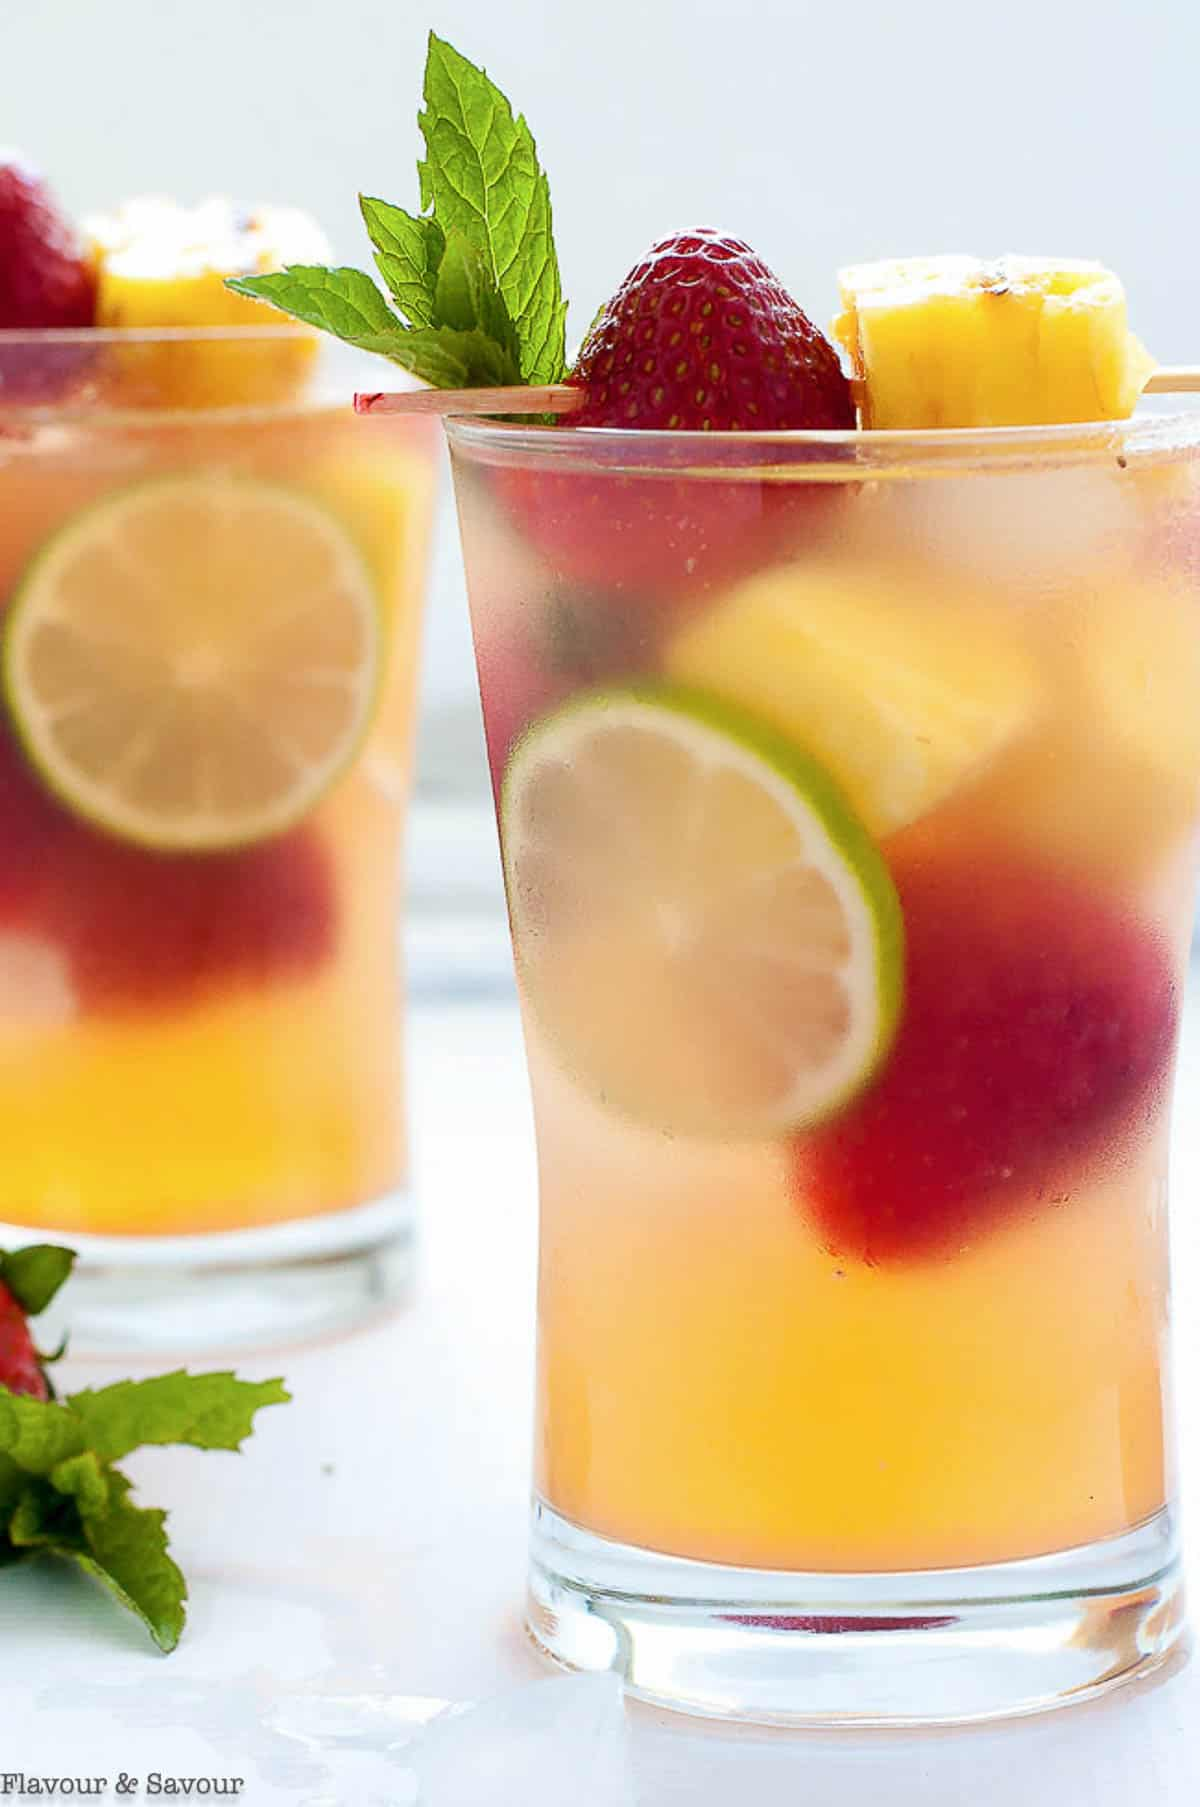 Grilled Pineapple Strawberry Sangria in two glasses with strawberries and lime slices.